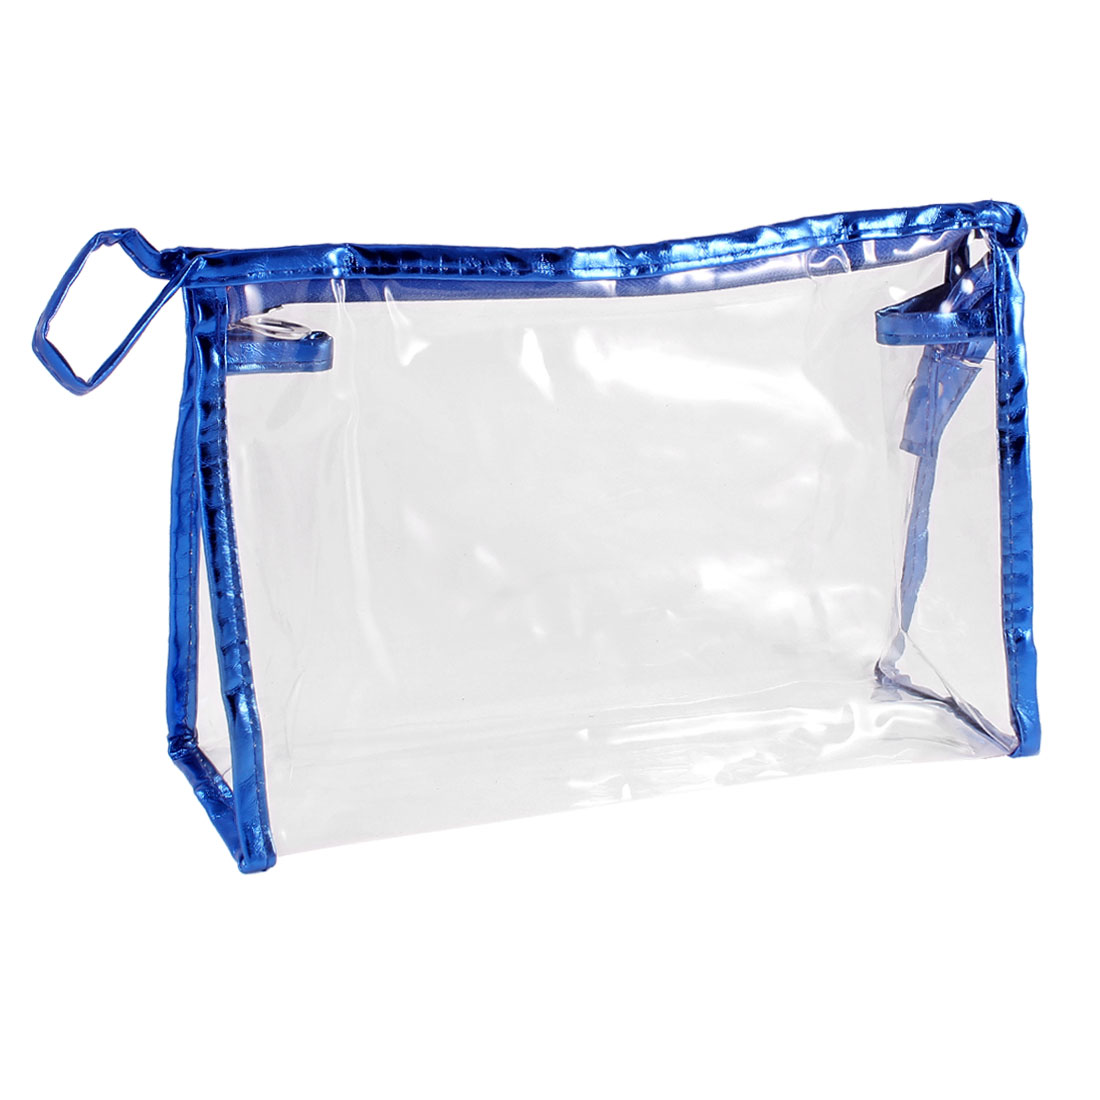 Portable Rectangular Blue Faux Leather Frame Transparent Makeup Holder Bag 27cmx8cmx16cm